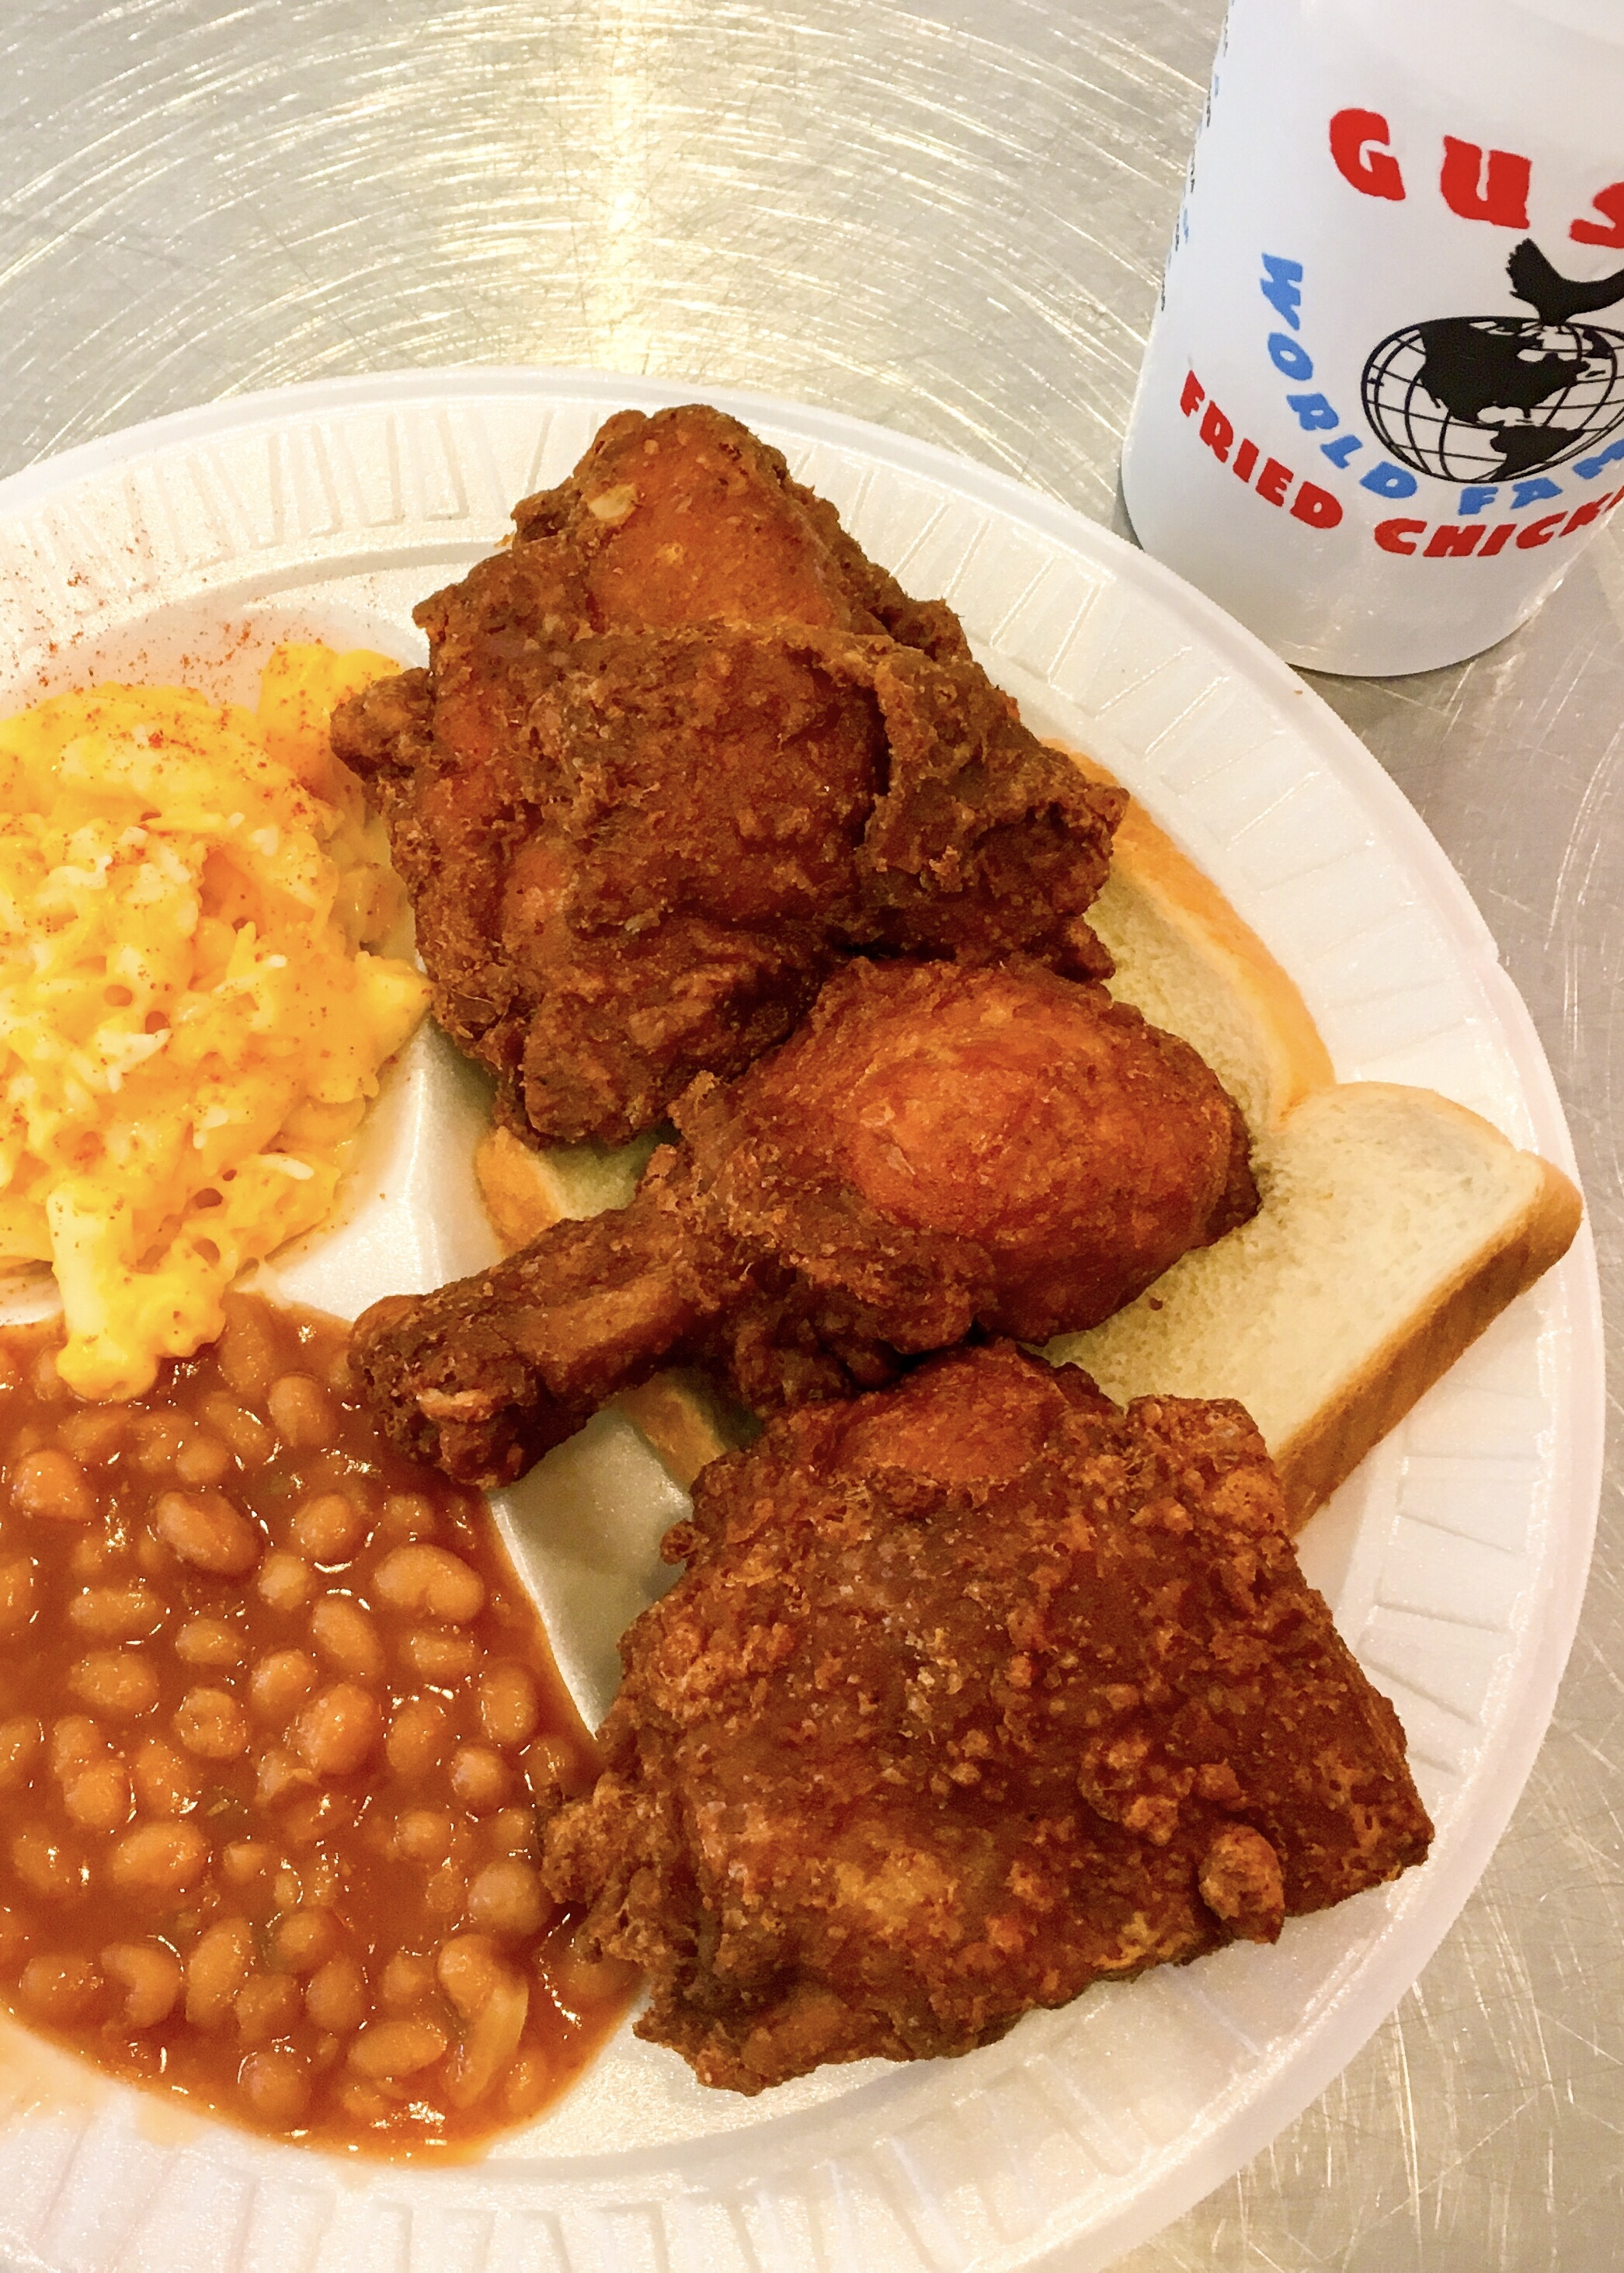 9. Eat Gus's Fried Chicken. - Just go.